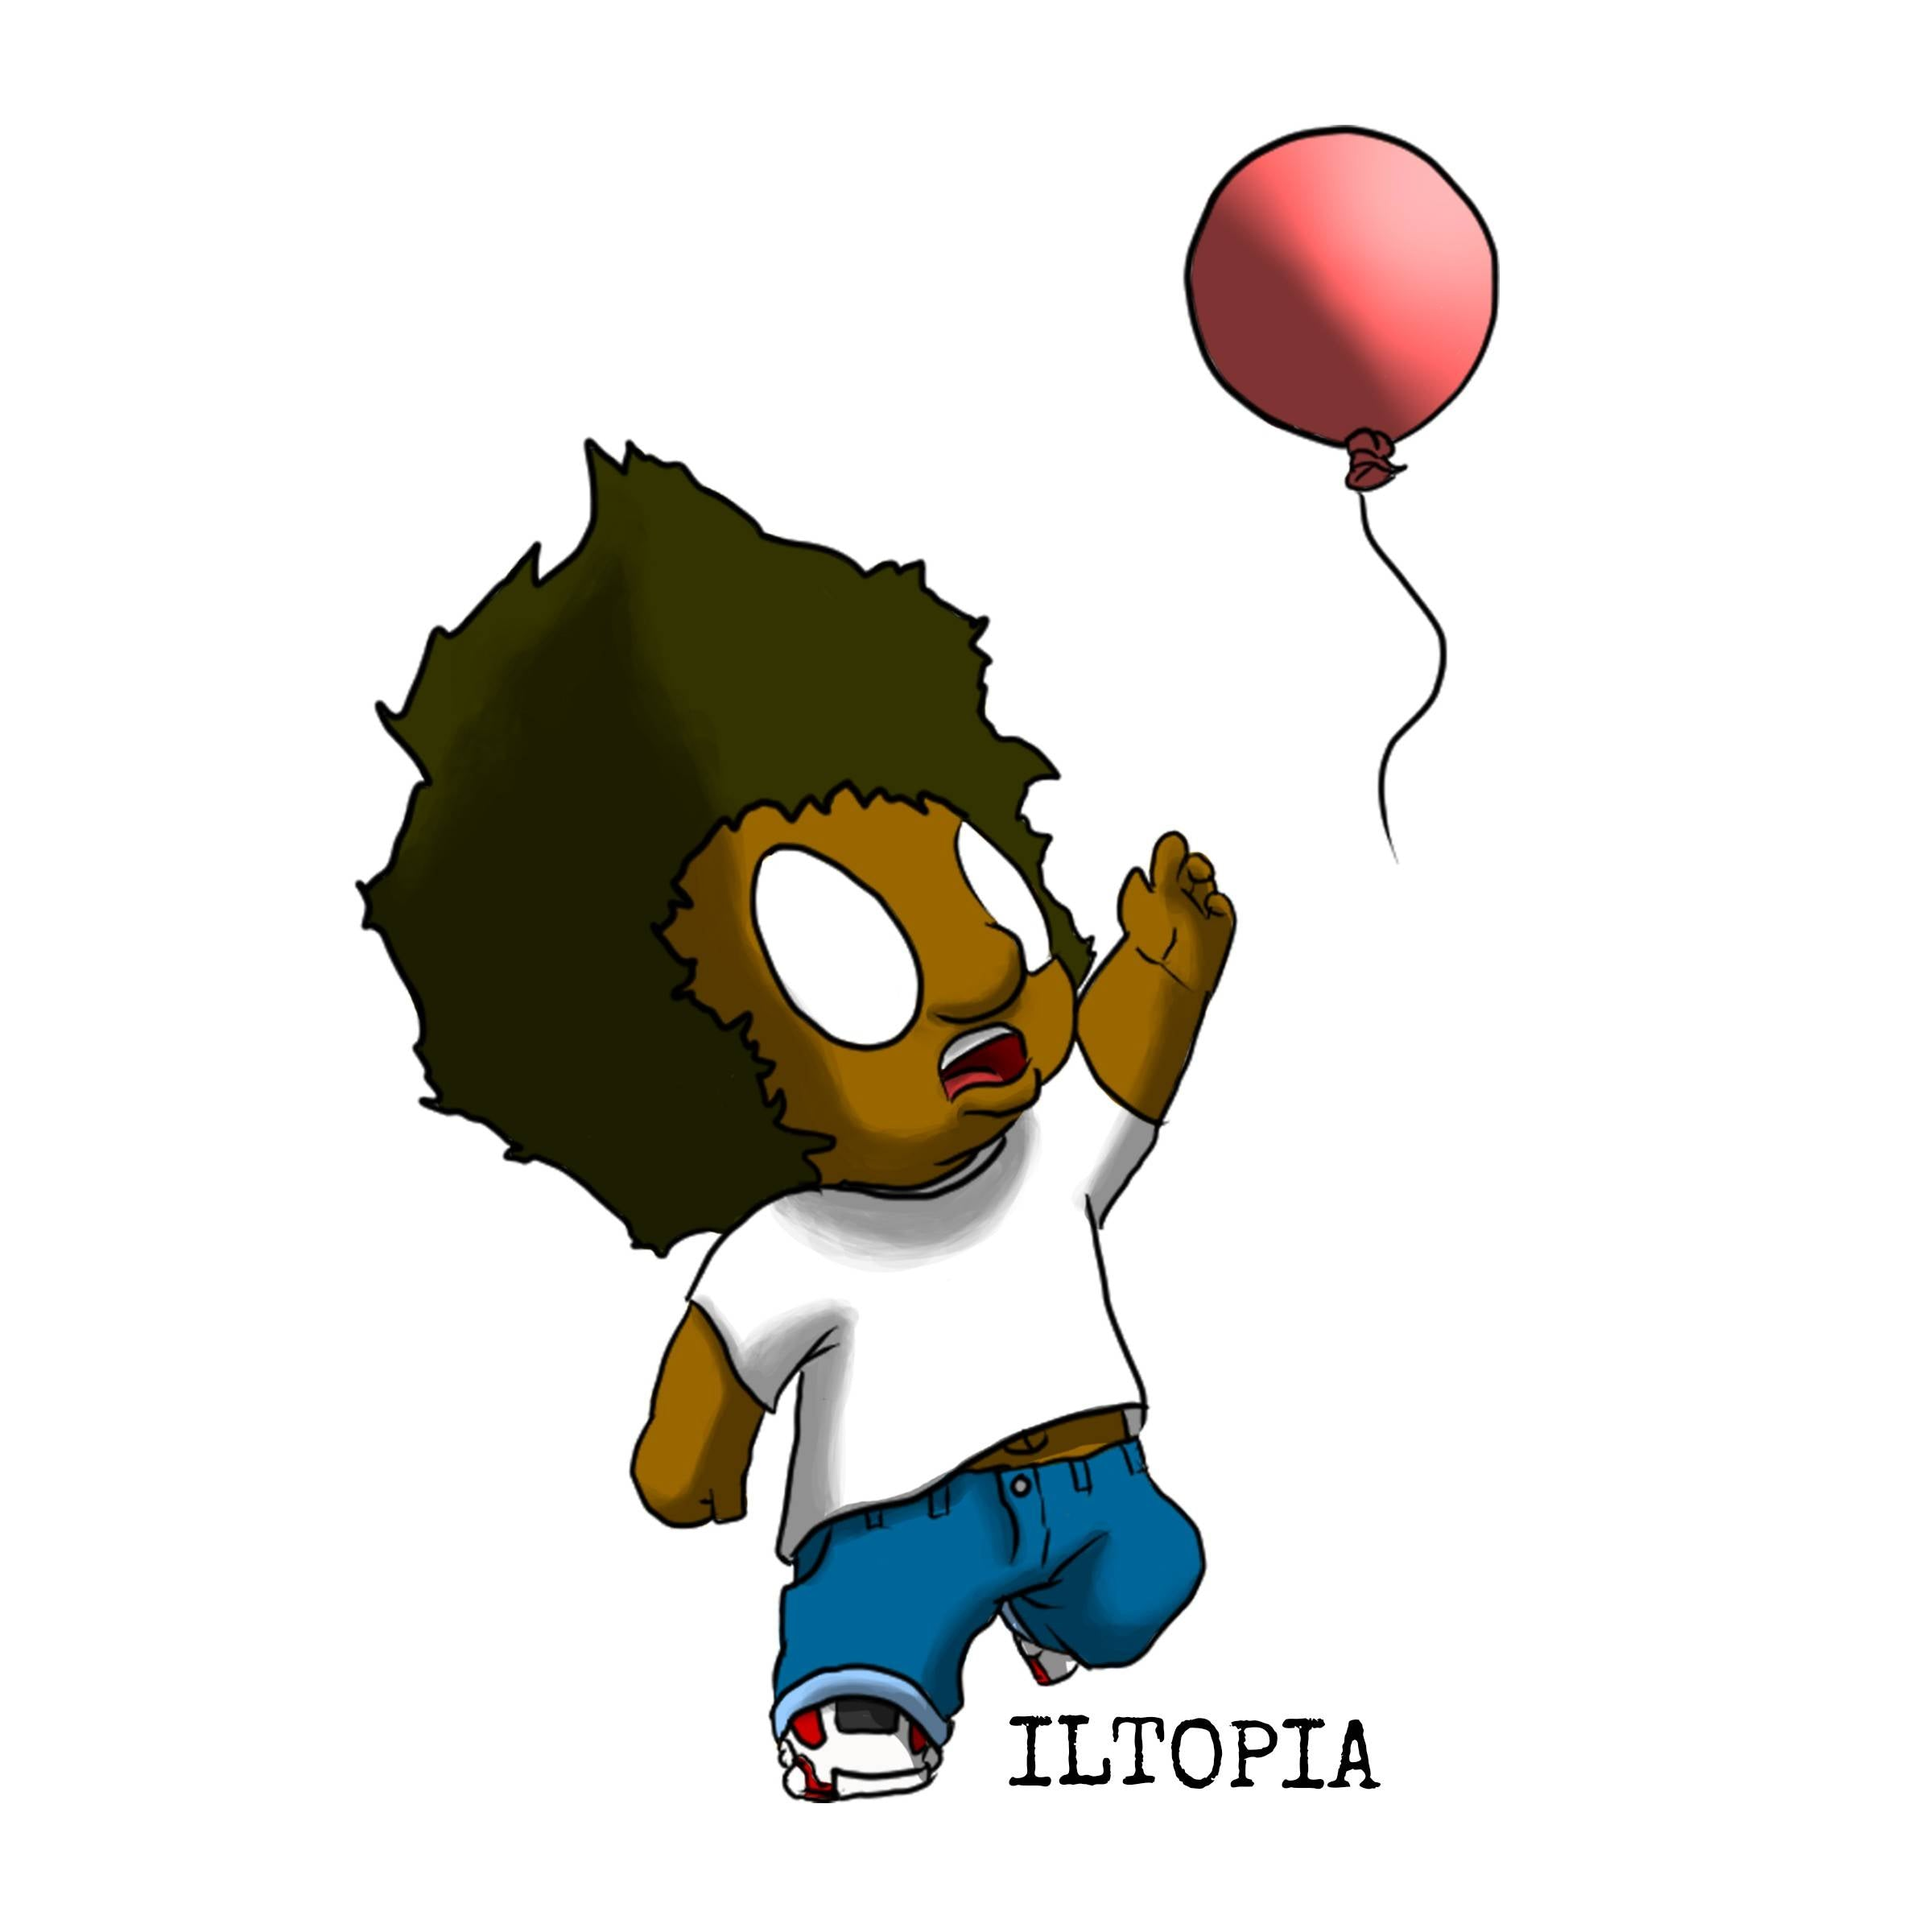 Iltopia Season 2 Pack